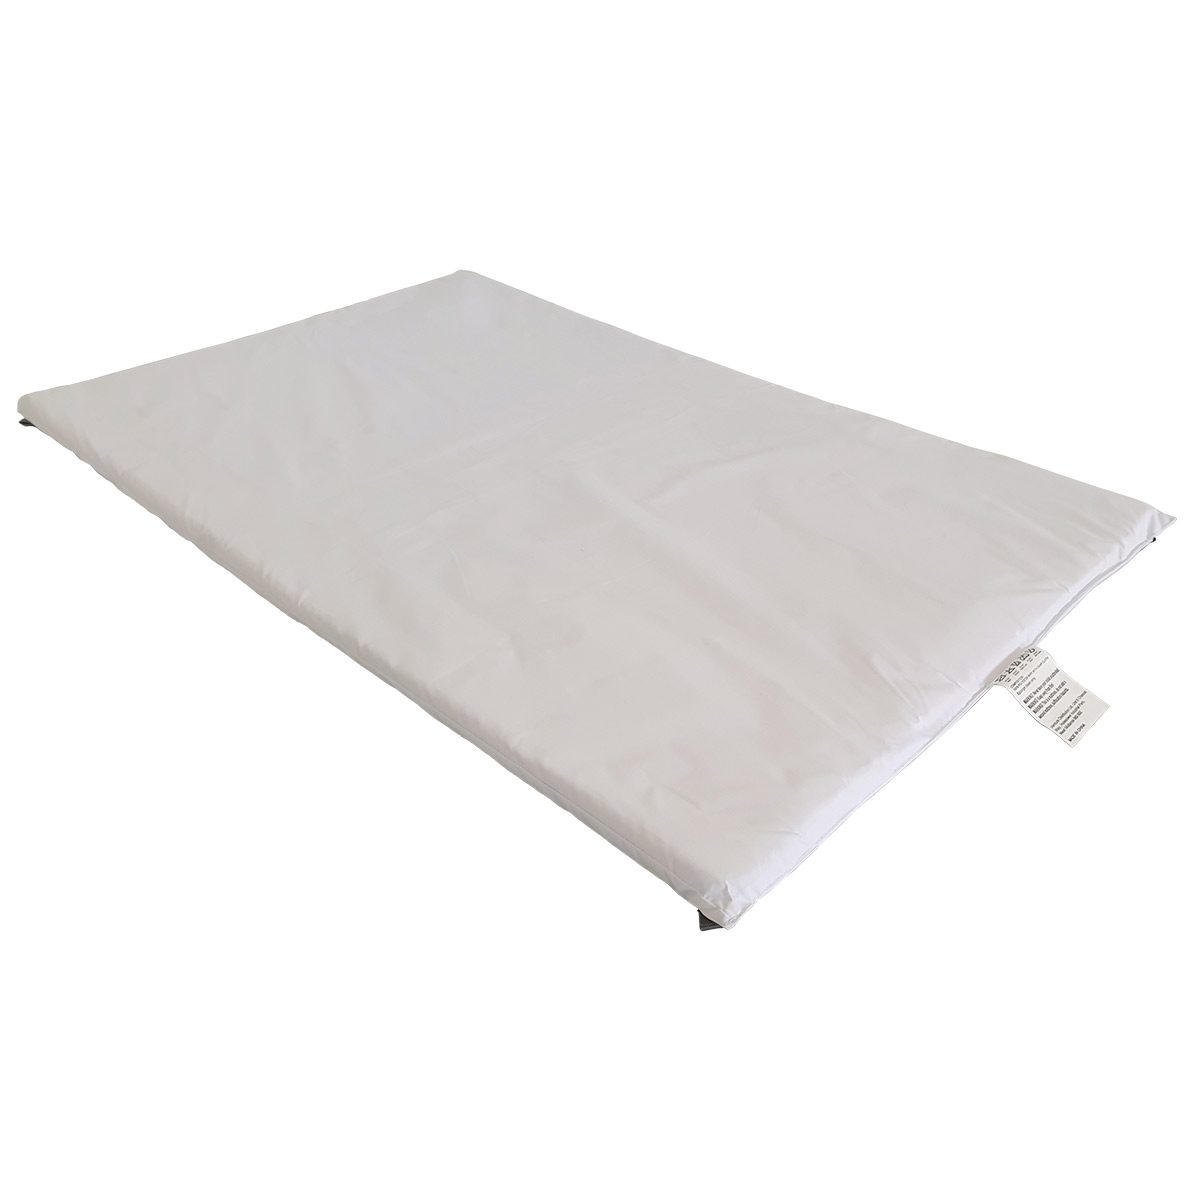 The mattress included with the Venture Roma travel cot